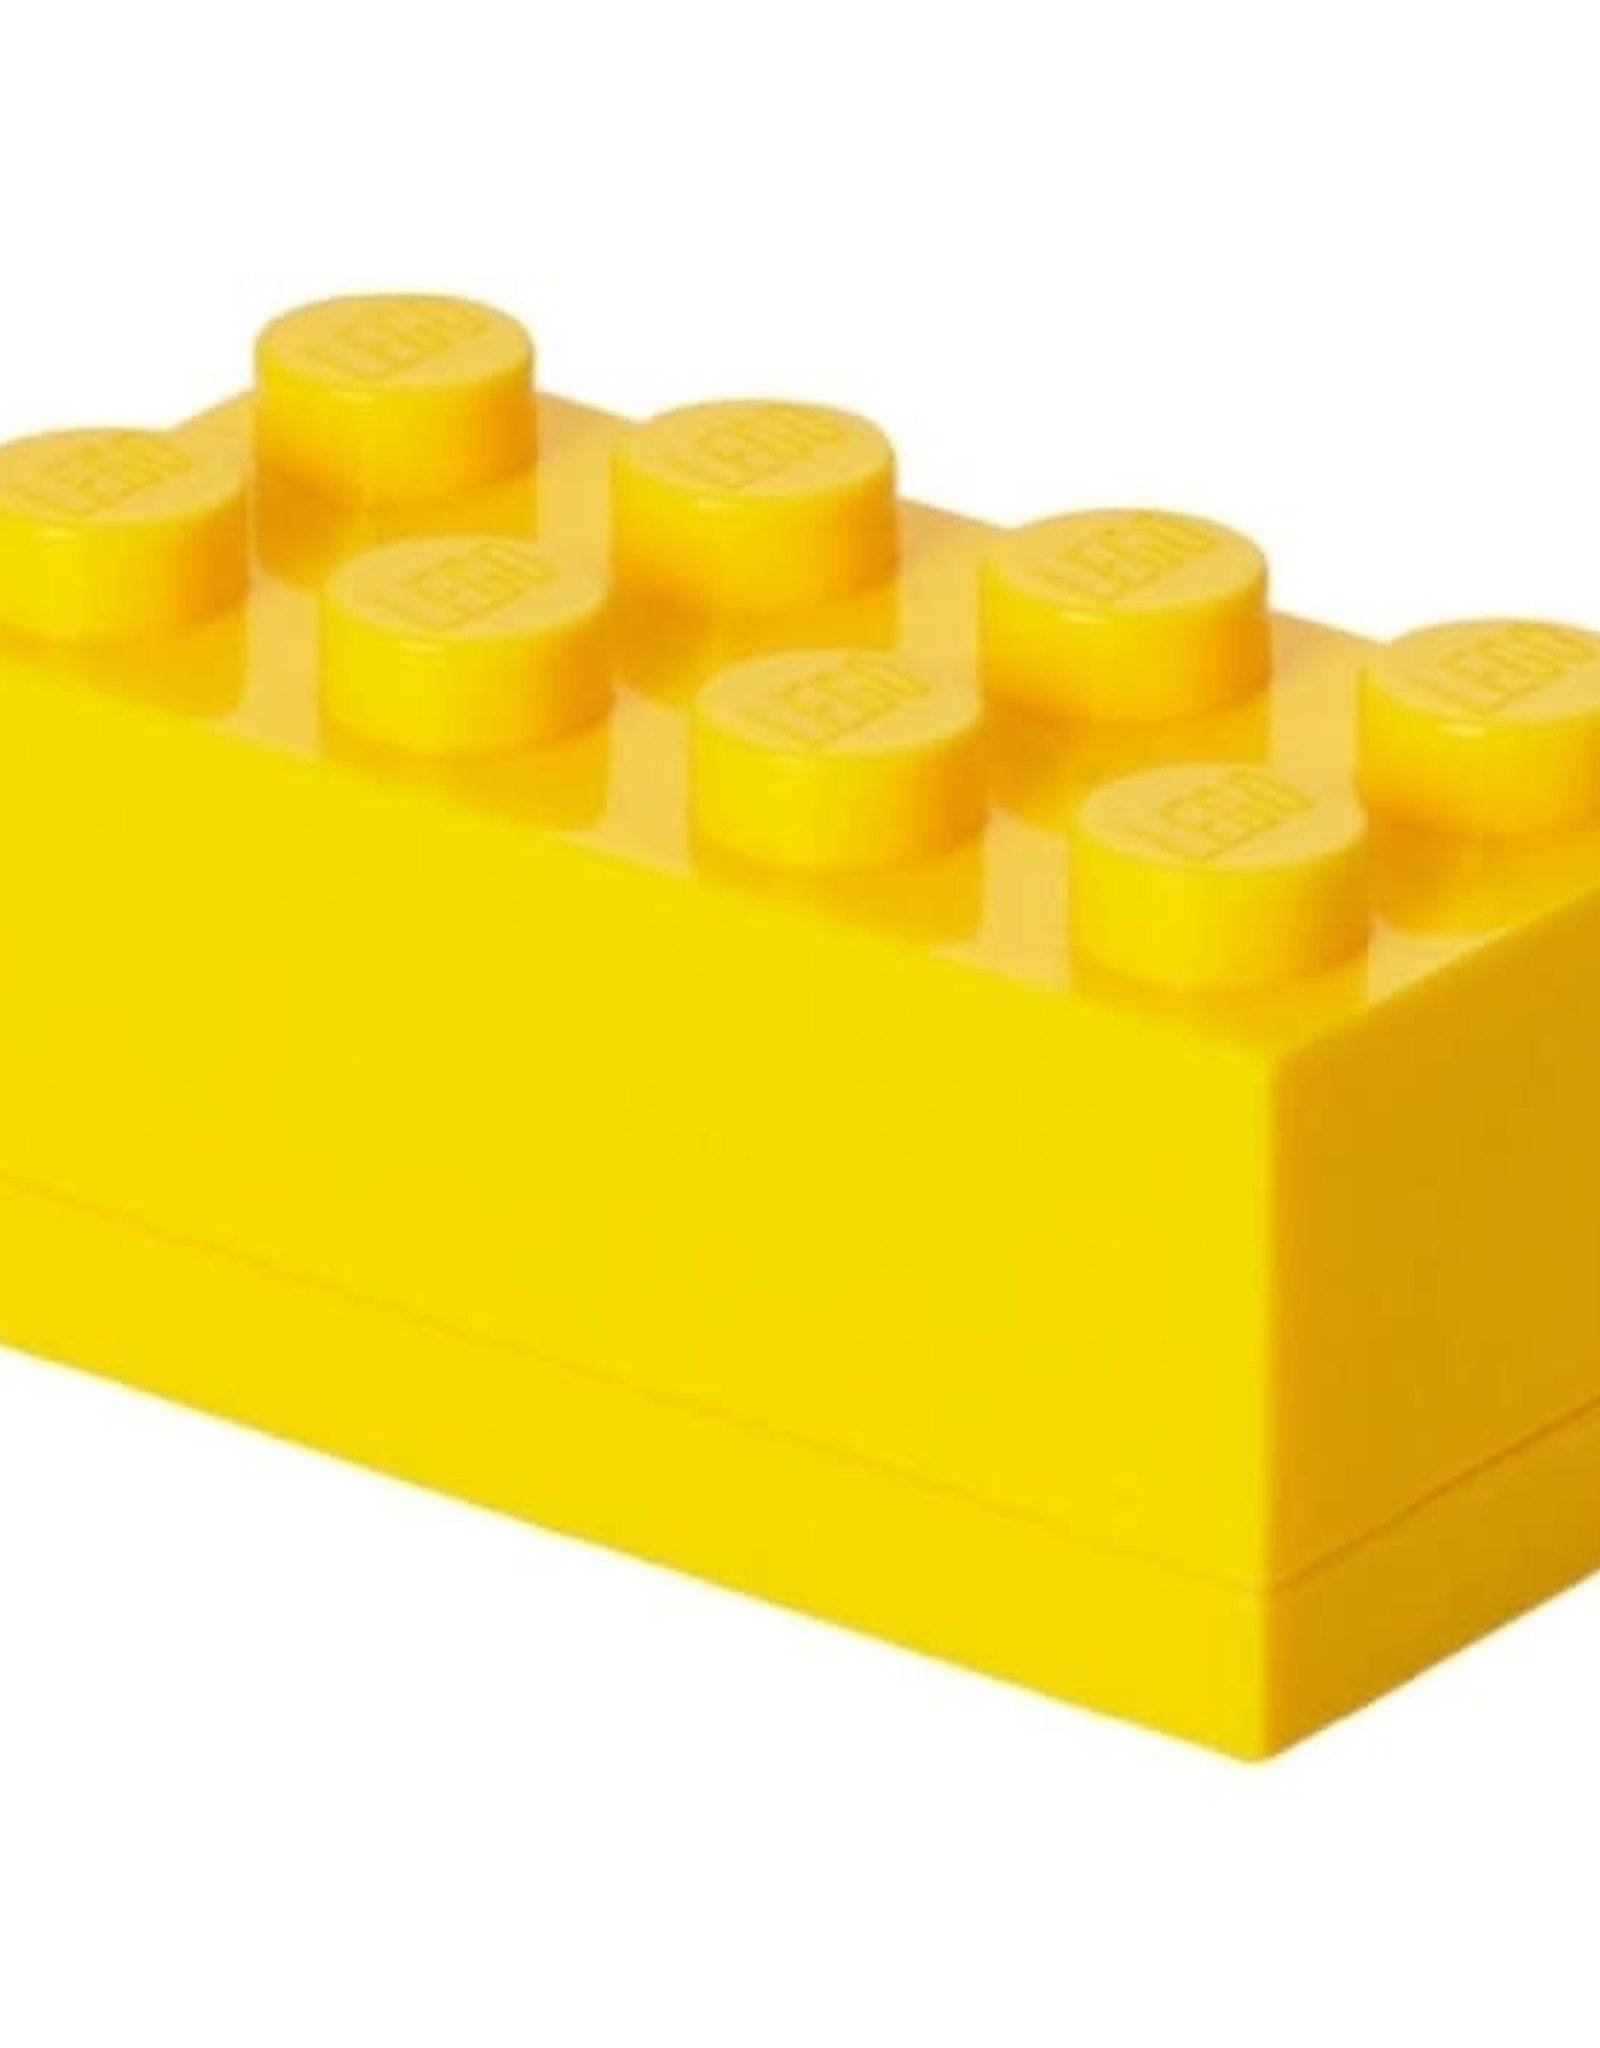 Lego Mini Box Yellow